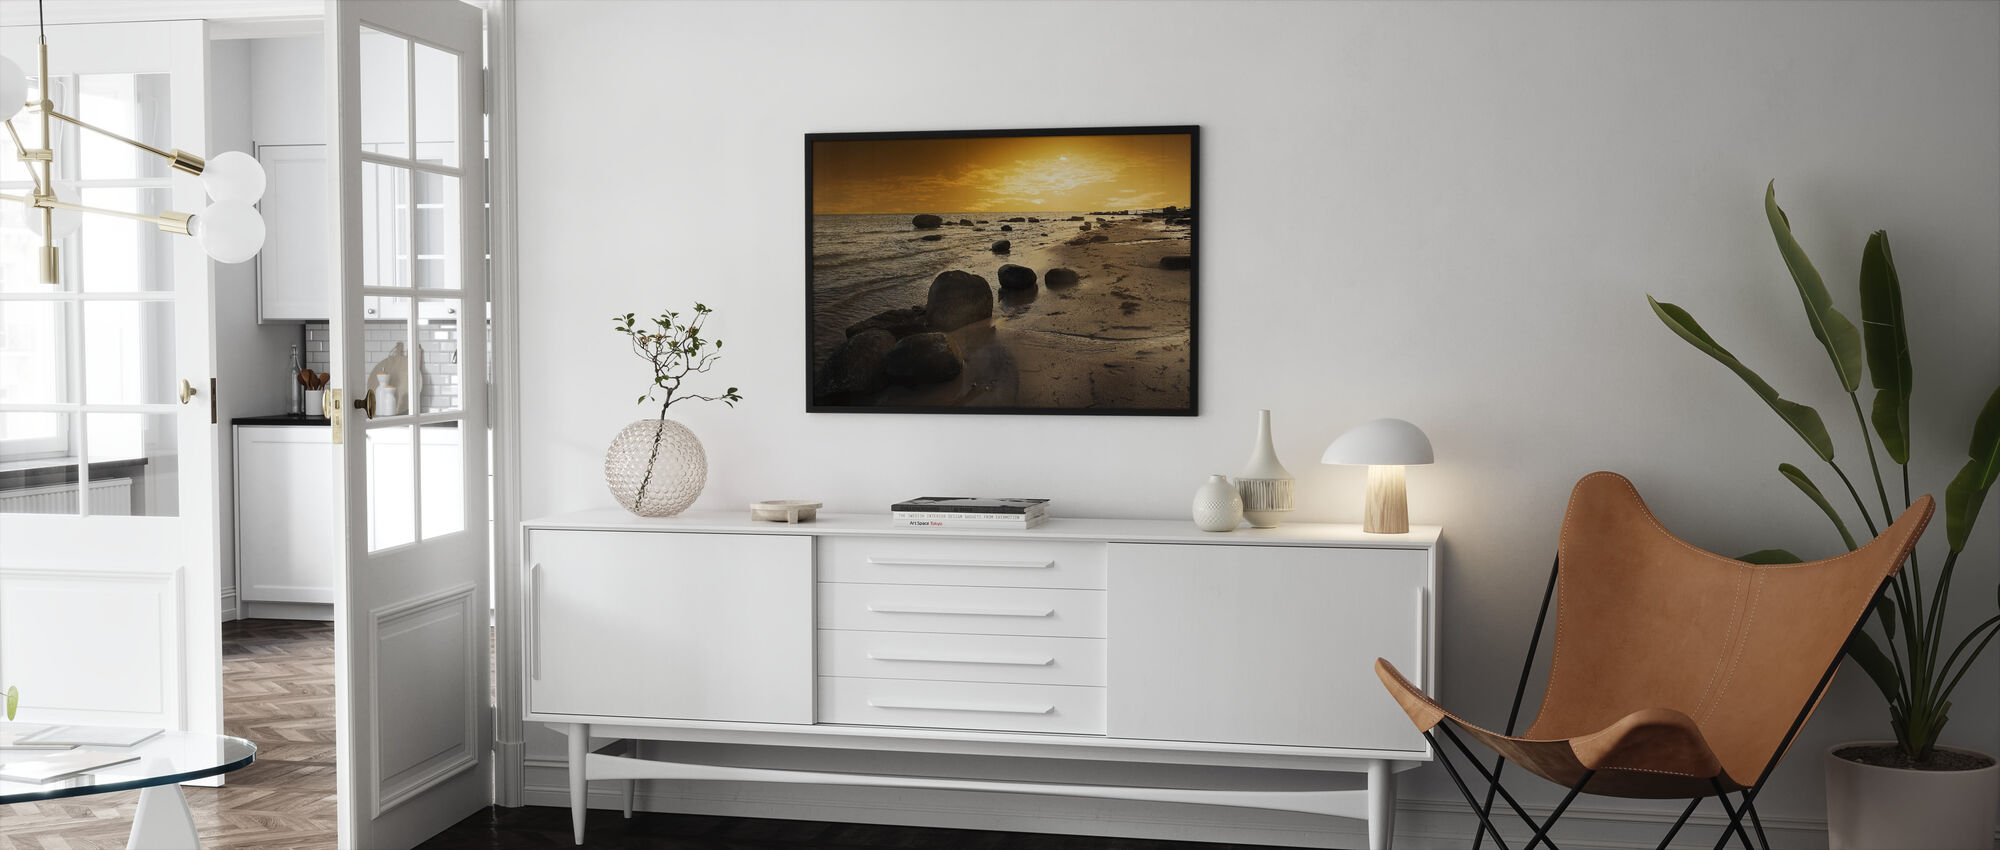 Golden Beach Sunset - Framed print - Living Room